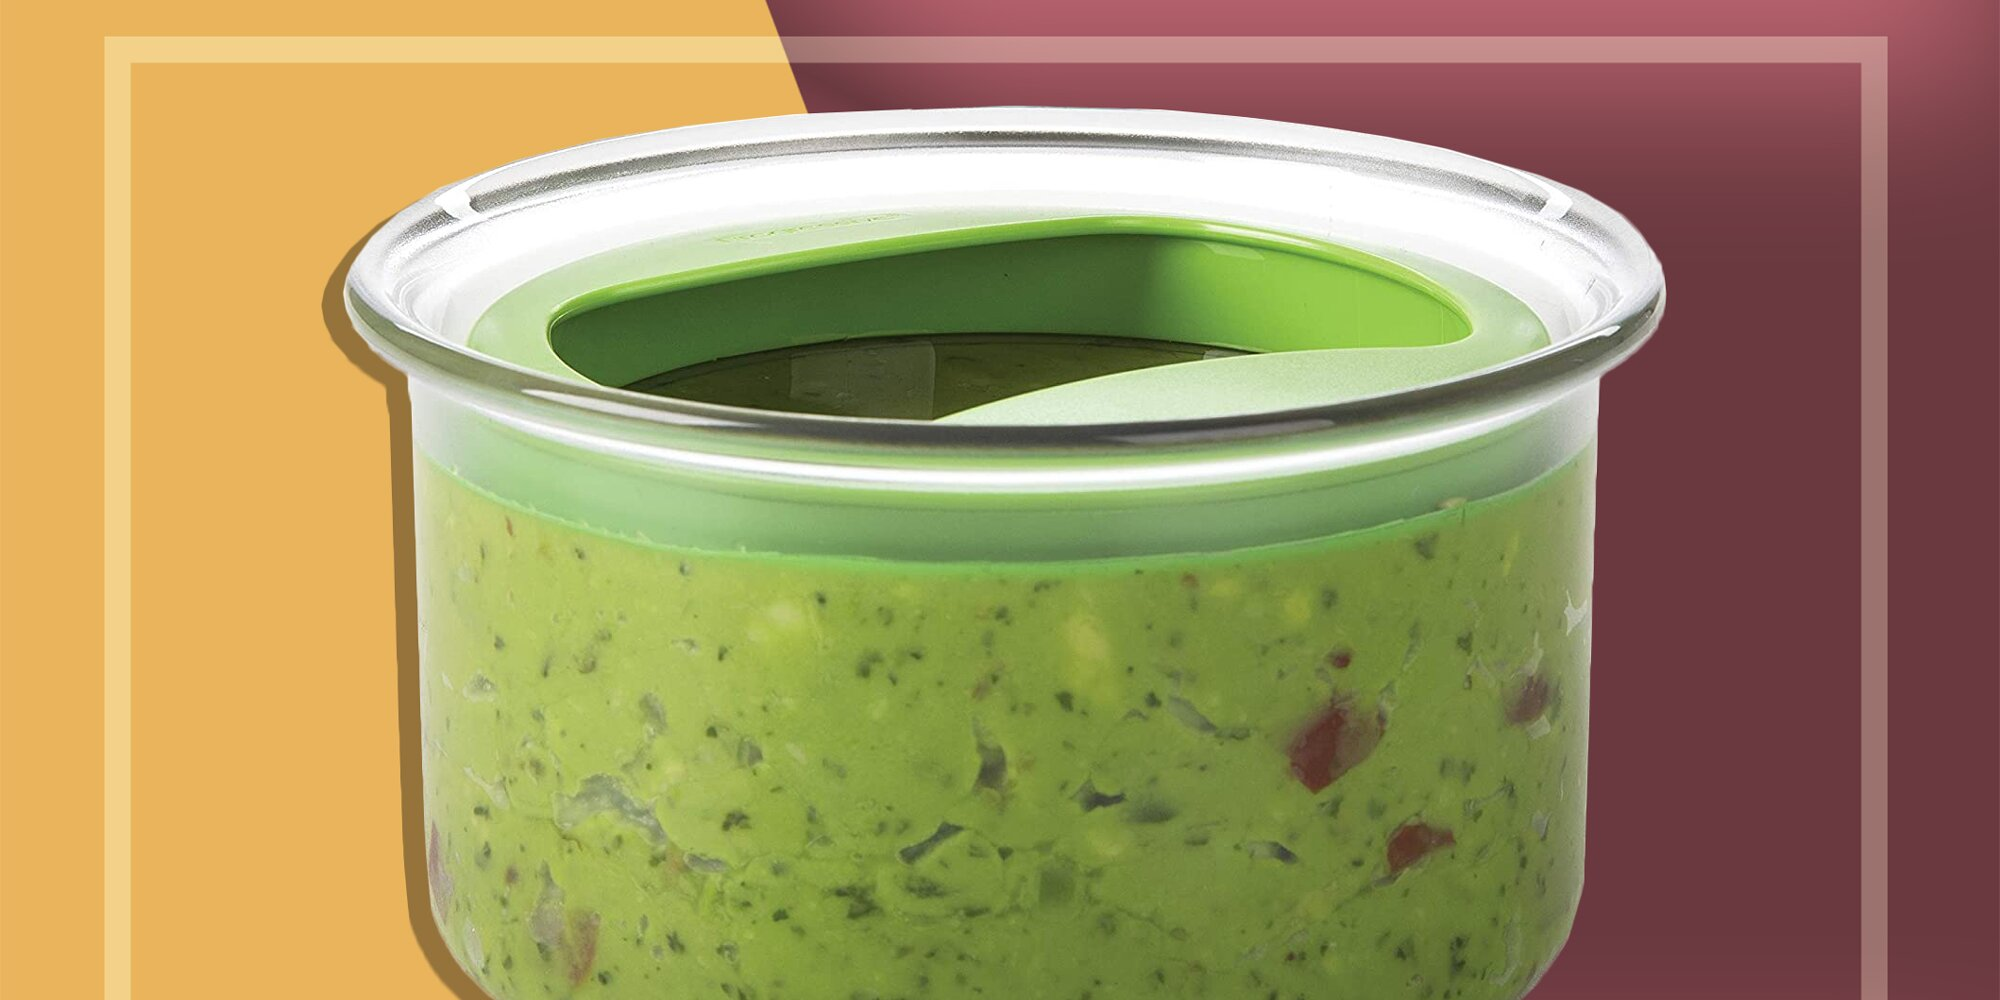 This Incredible Container Keeps Guacamole Fresh for Days